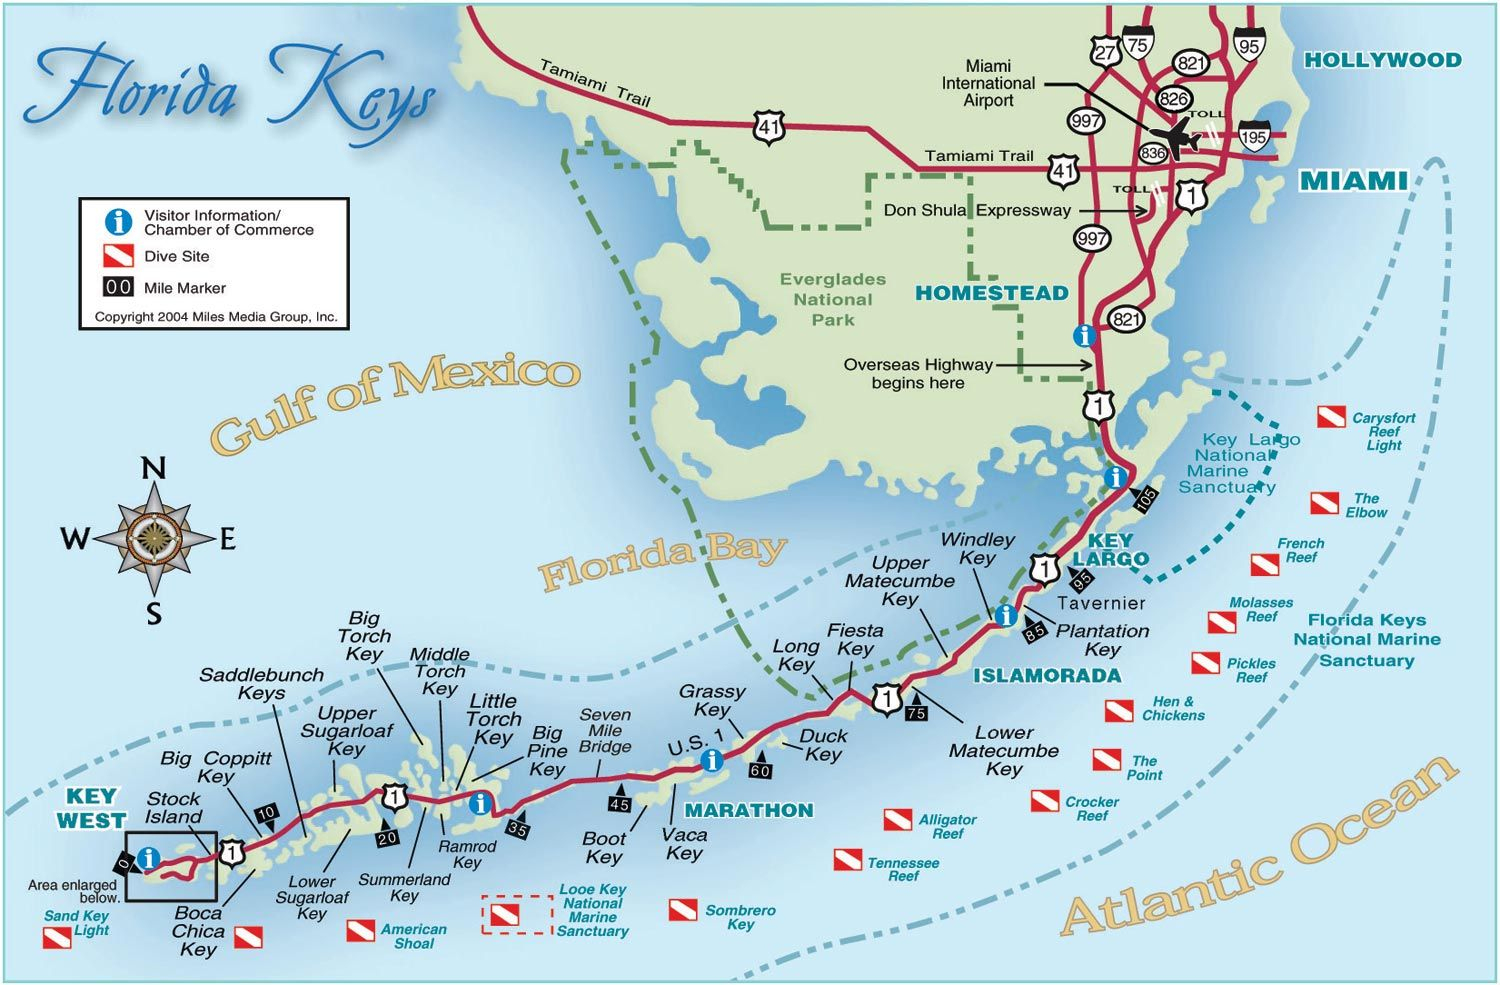 Image Detail For -Florida Keys And Key West Real Estate And Tourist - Map Of Florida Keys Hotels